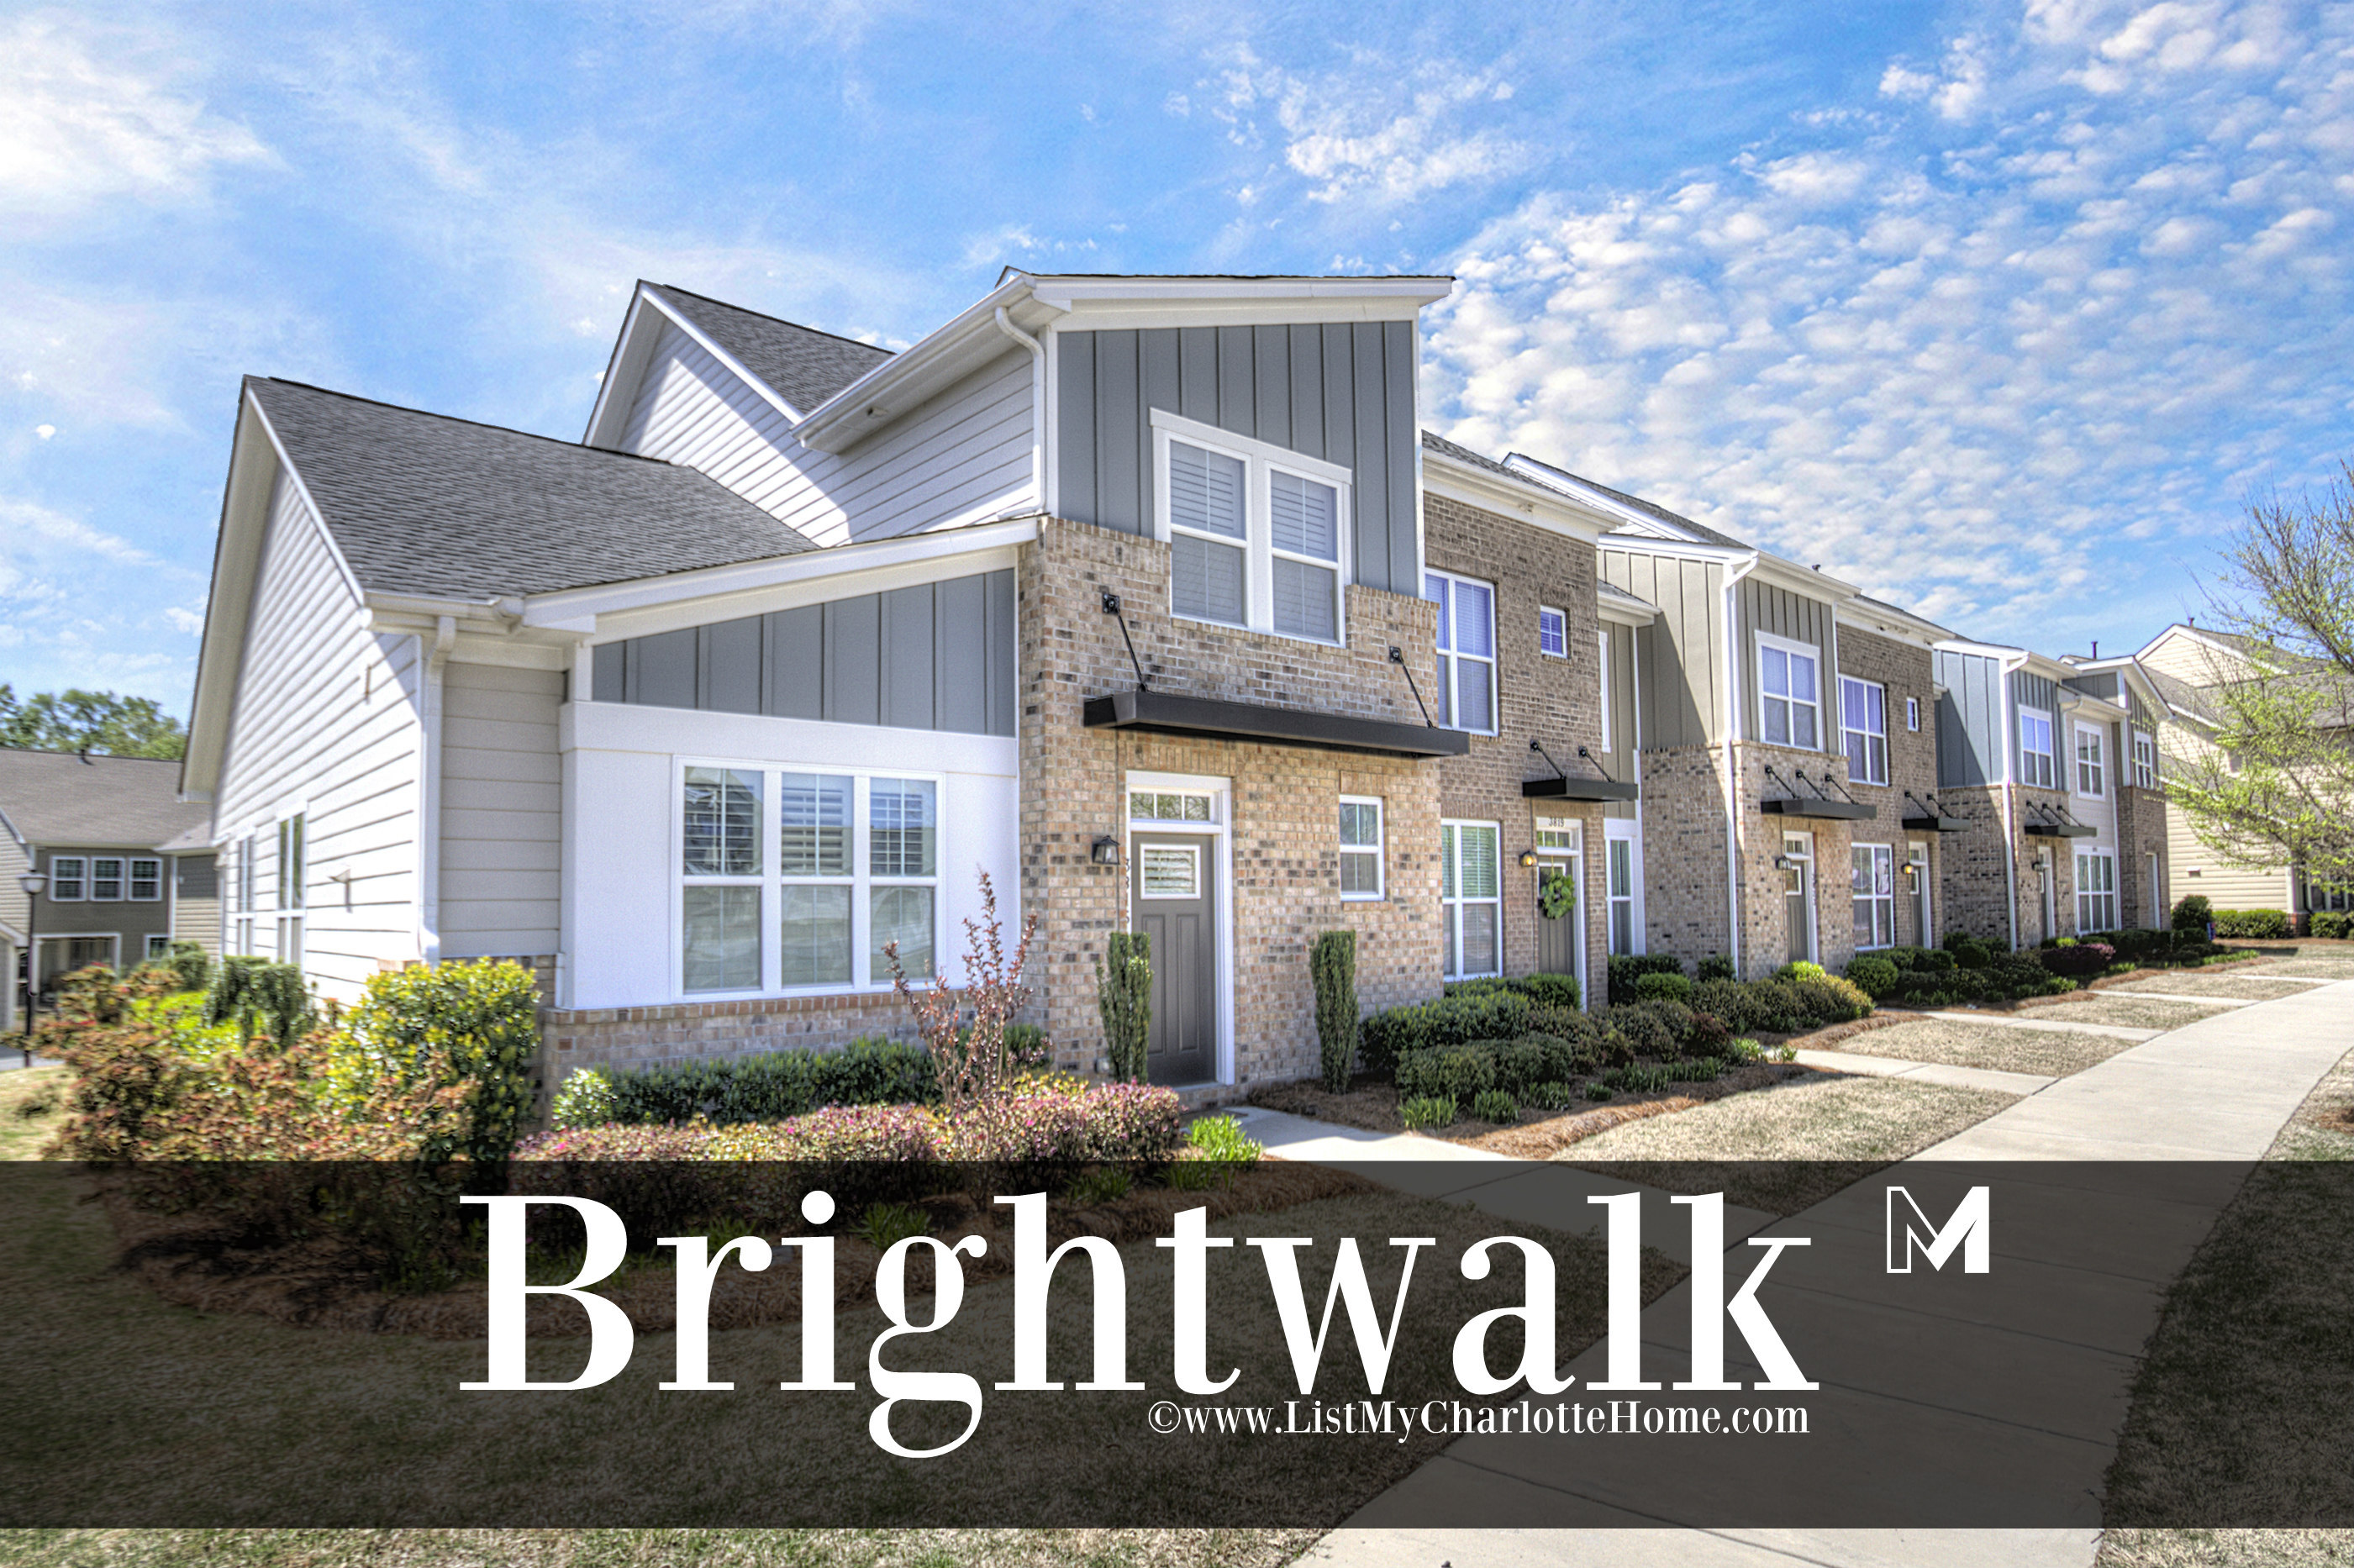 Brightwalk - THE place to live in Charlotte NC!